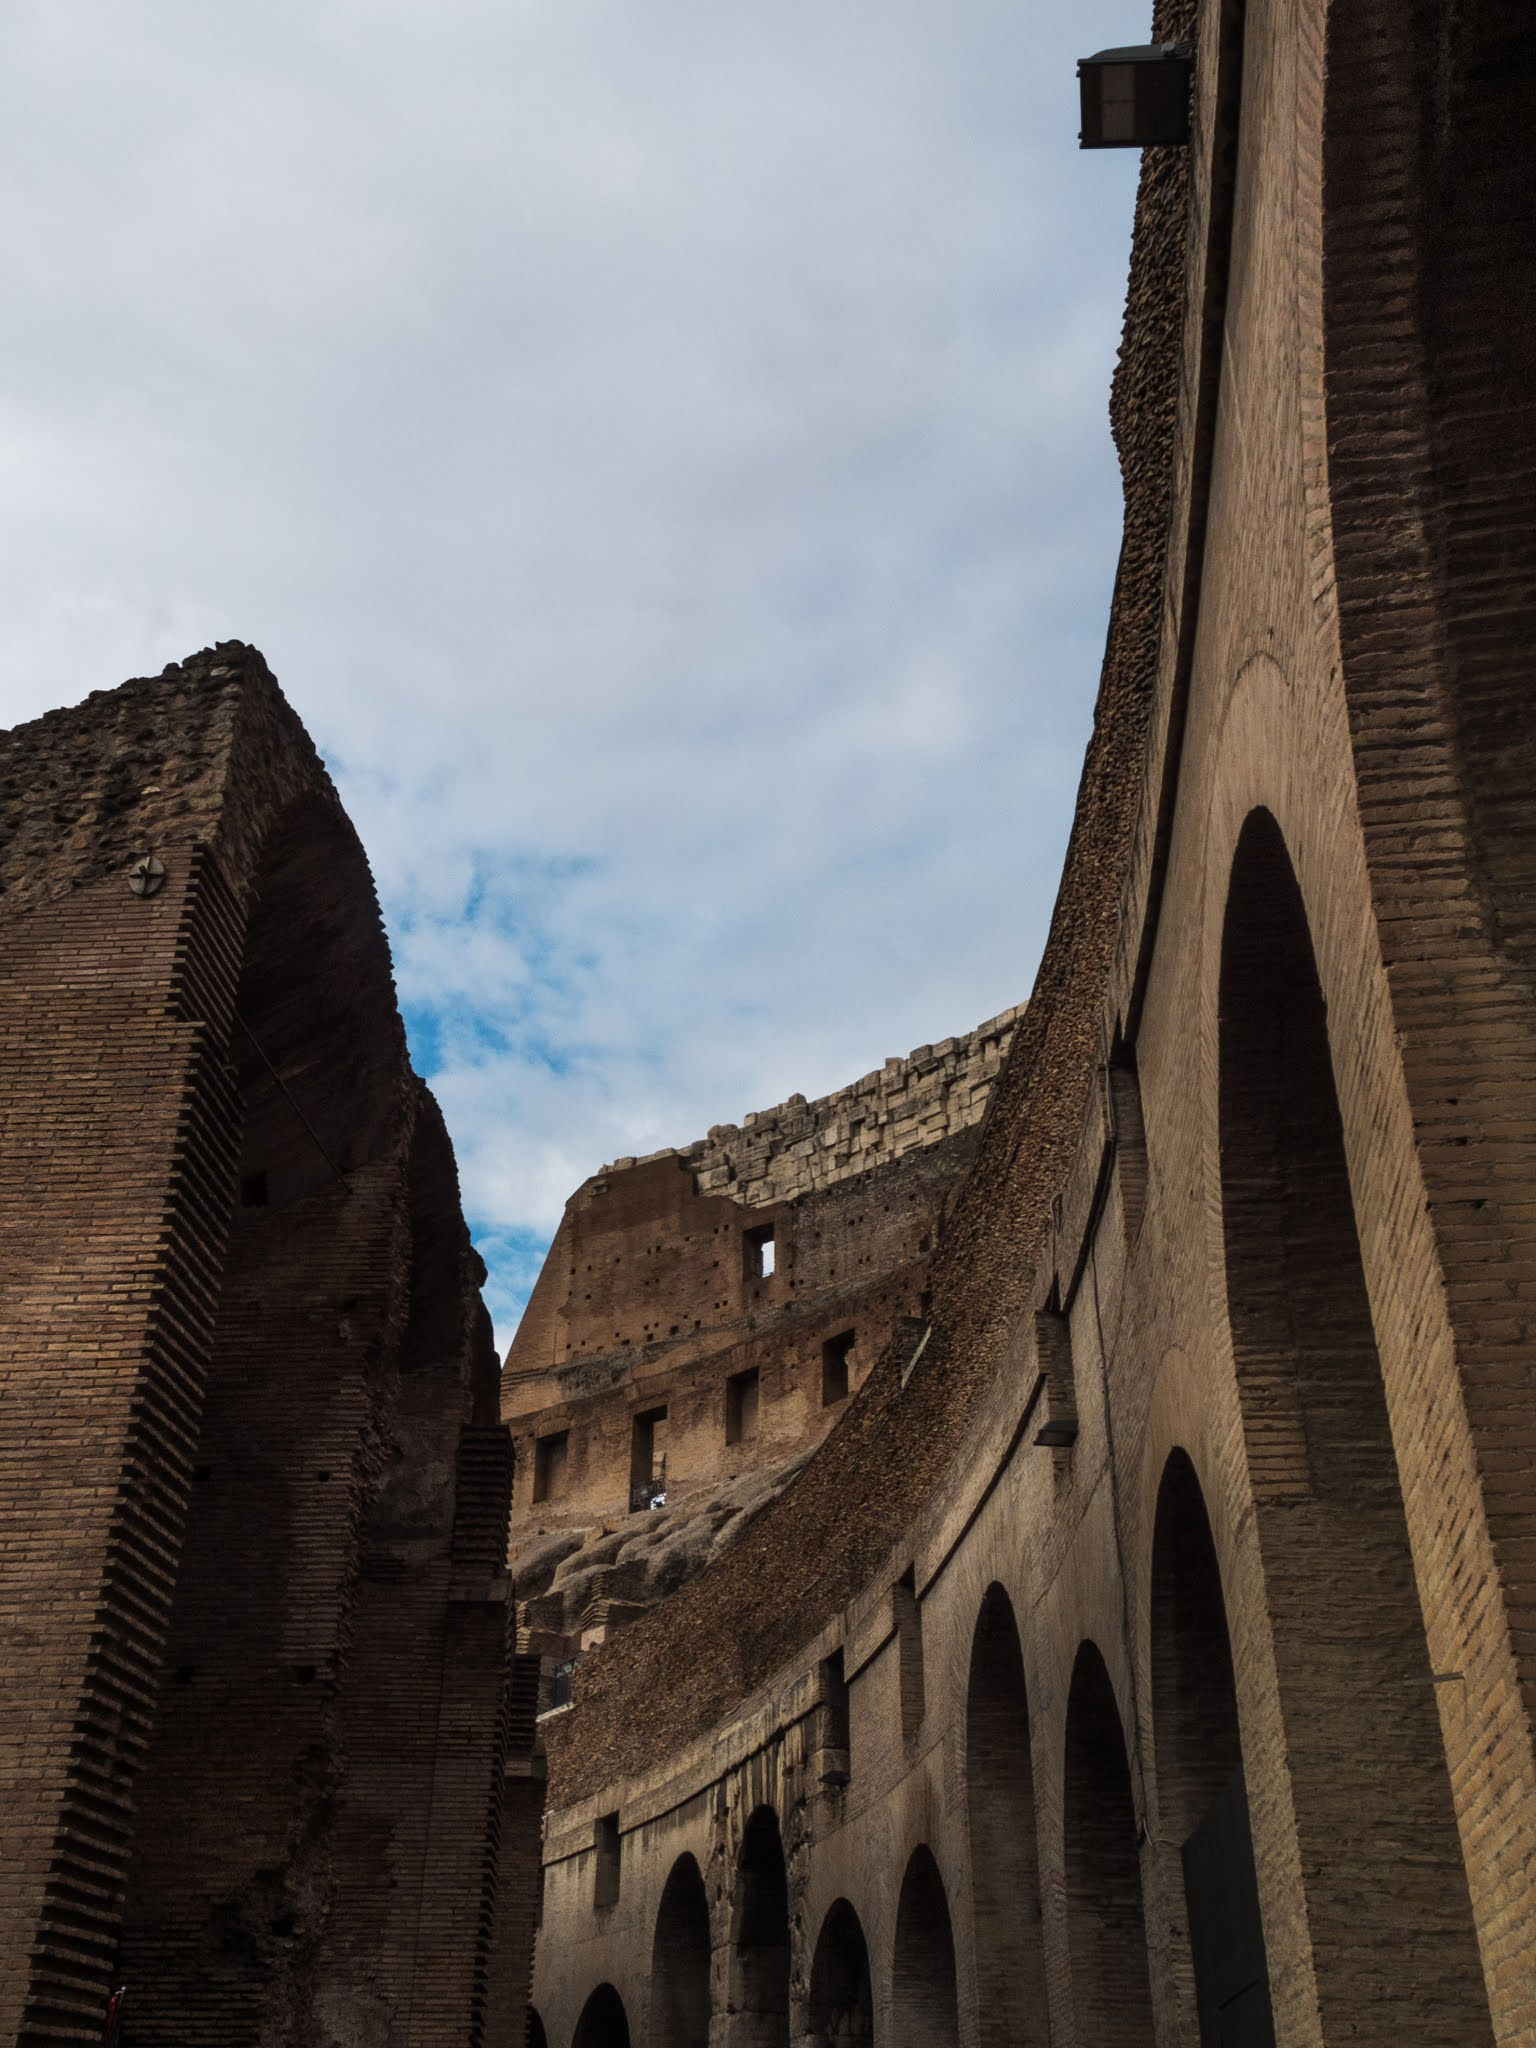 Looking up at the arches inside the Colosseum.